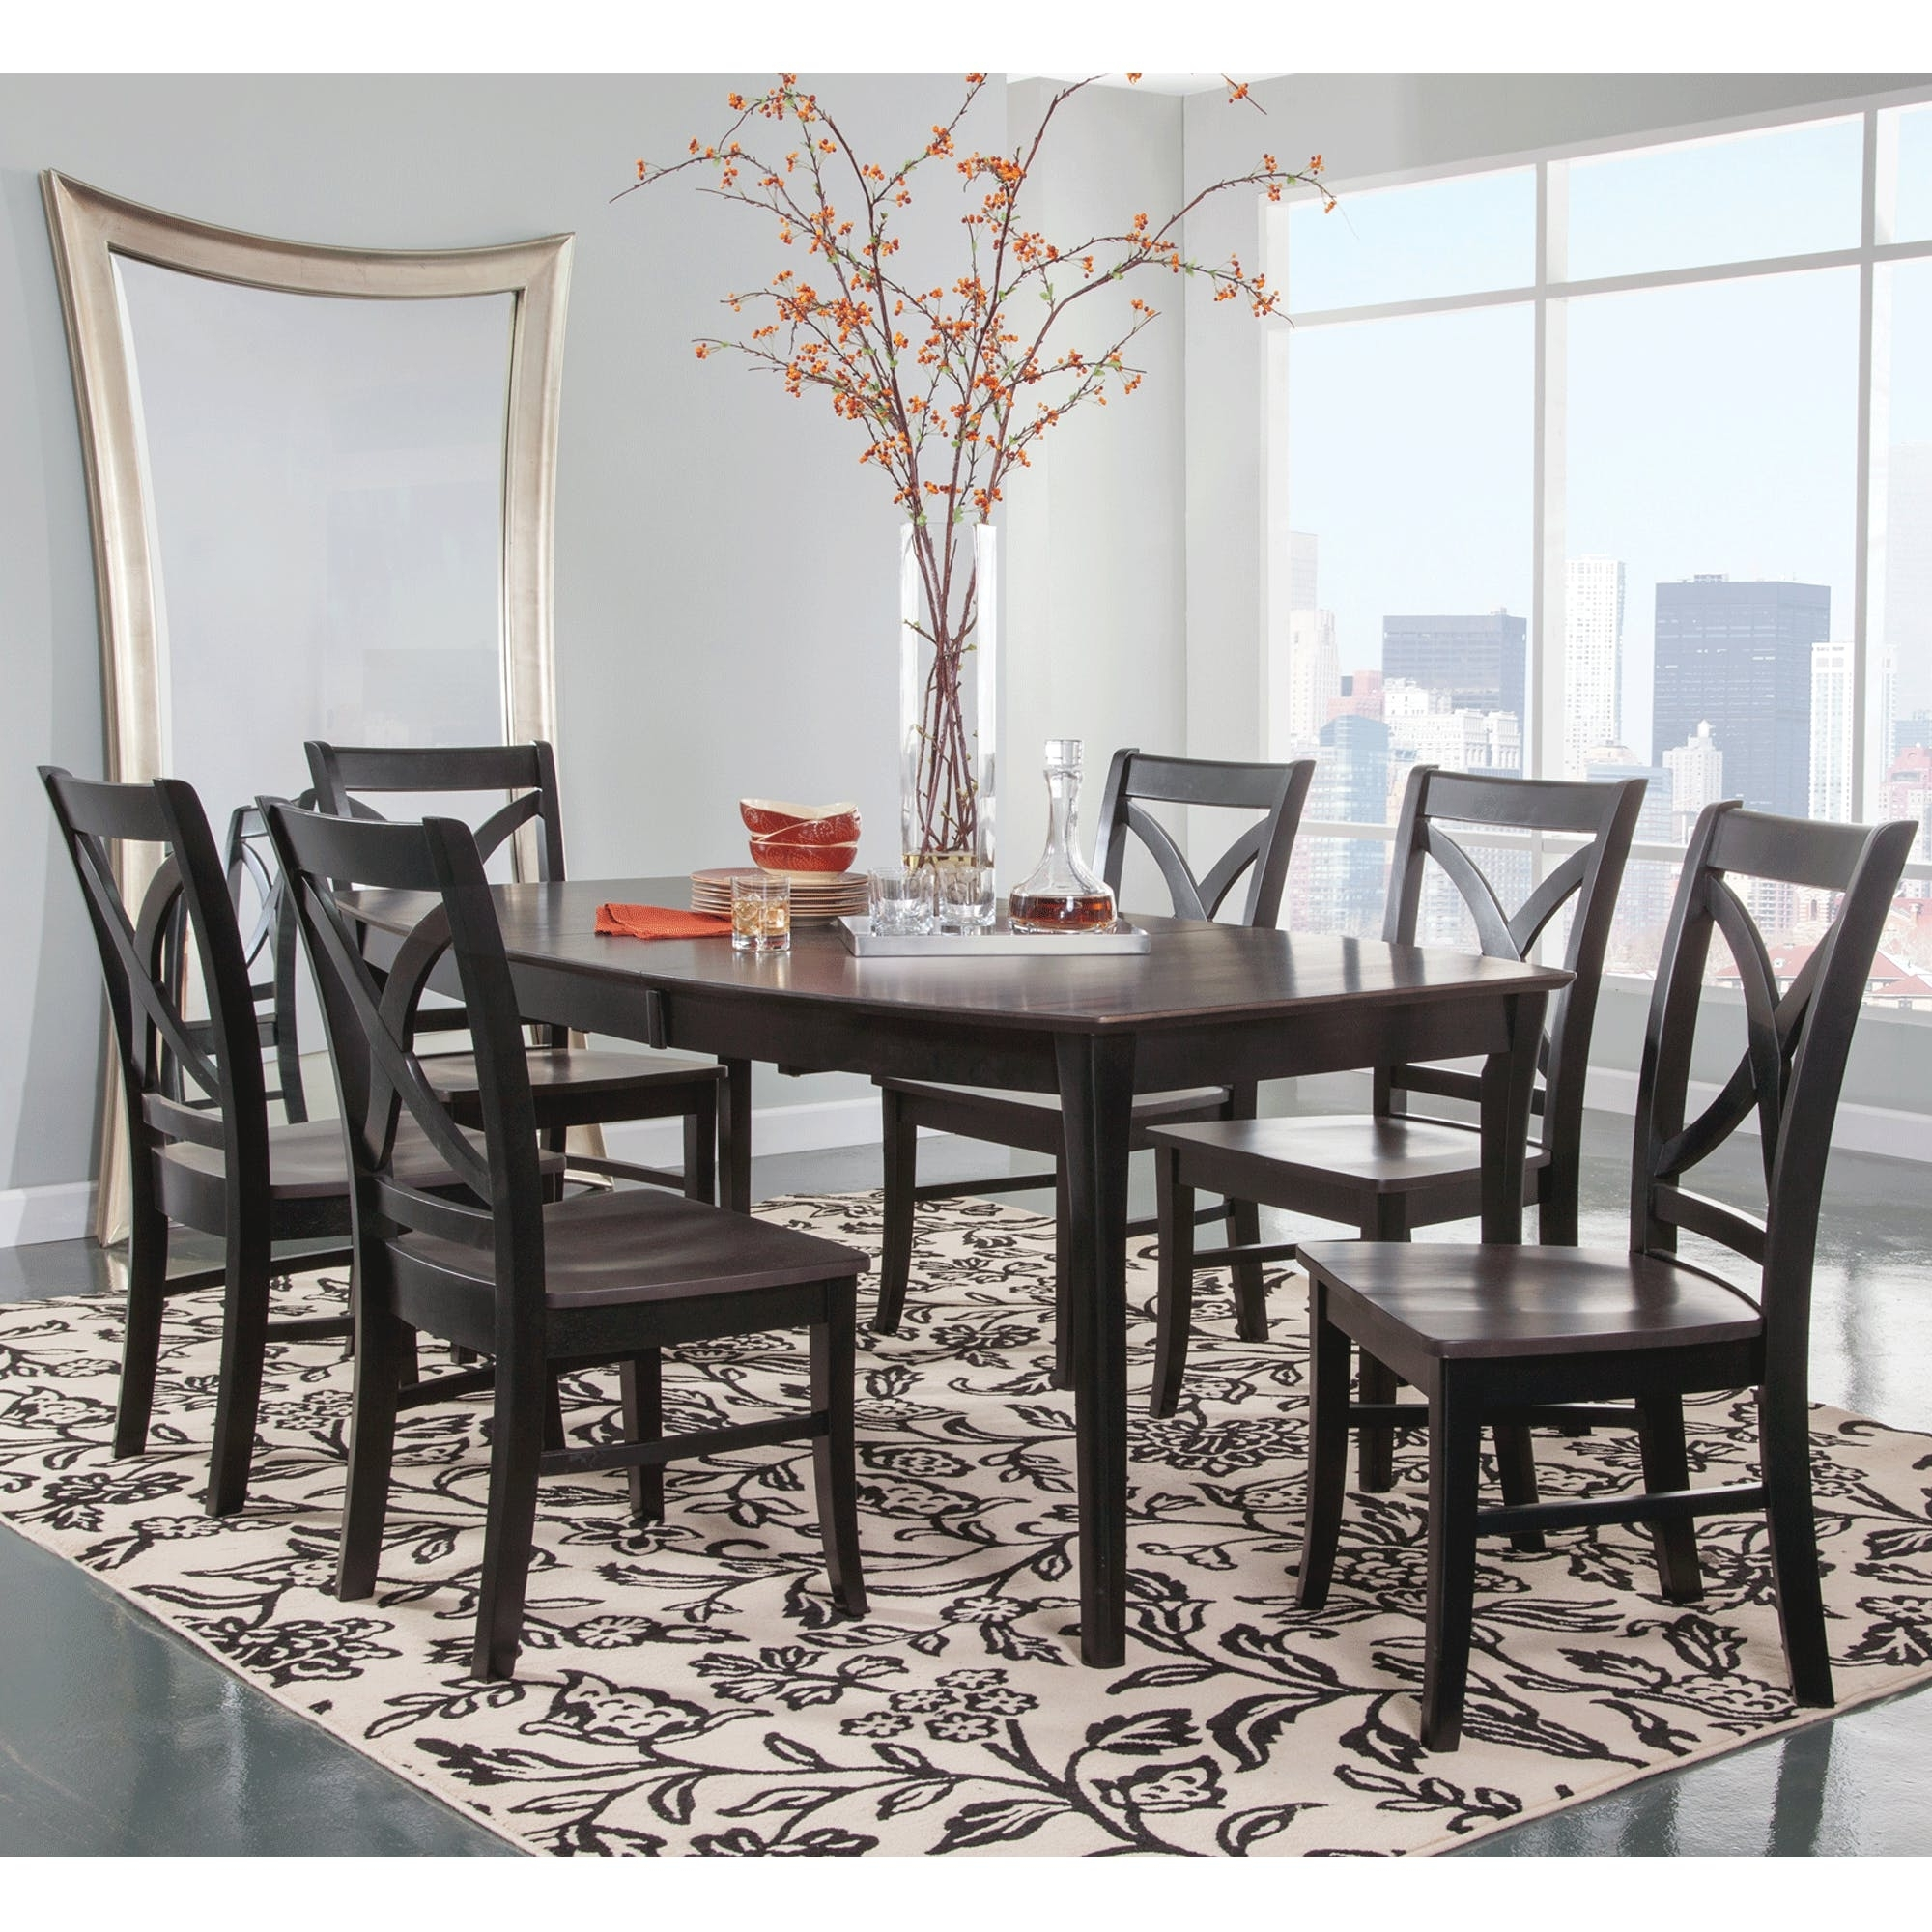 Cosmopolitan Coal/black Dining Room 7 Piece Set – Butterfly Leaf Leg Regarding Widely Used Craftsman 7 Piece Rectangle Extension Dining Sets With Uph Side Chairs (View 2 of 25)